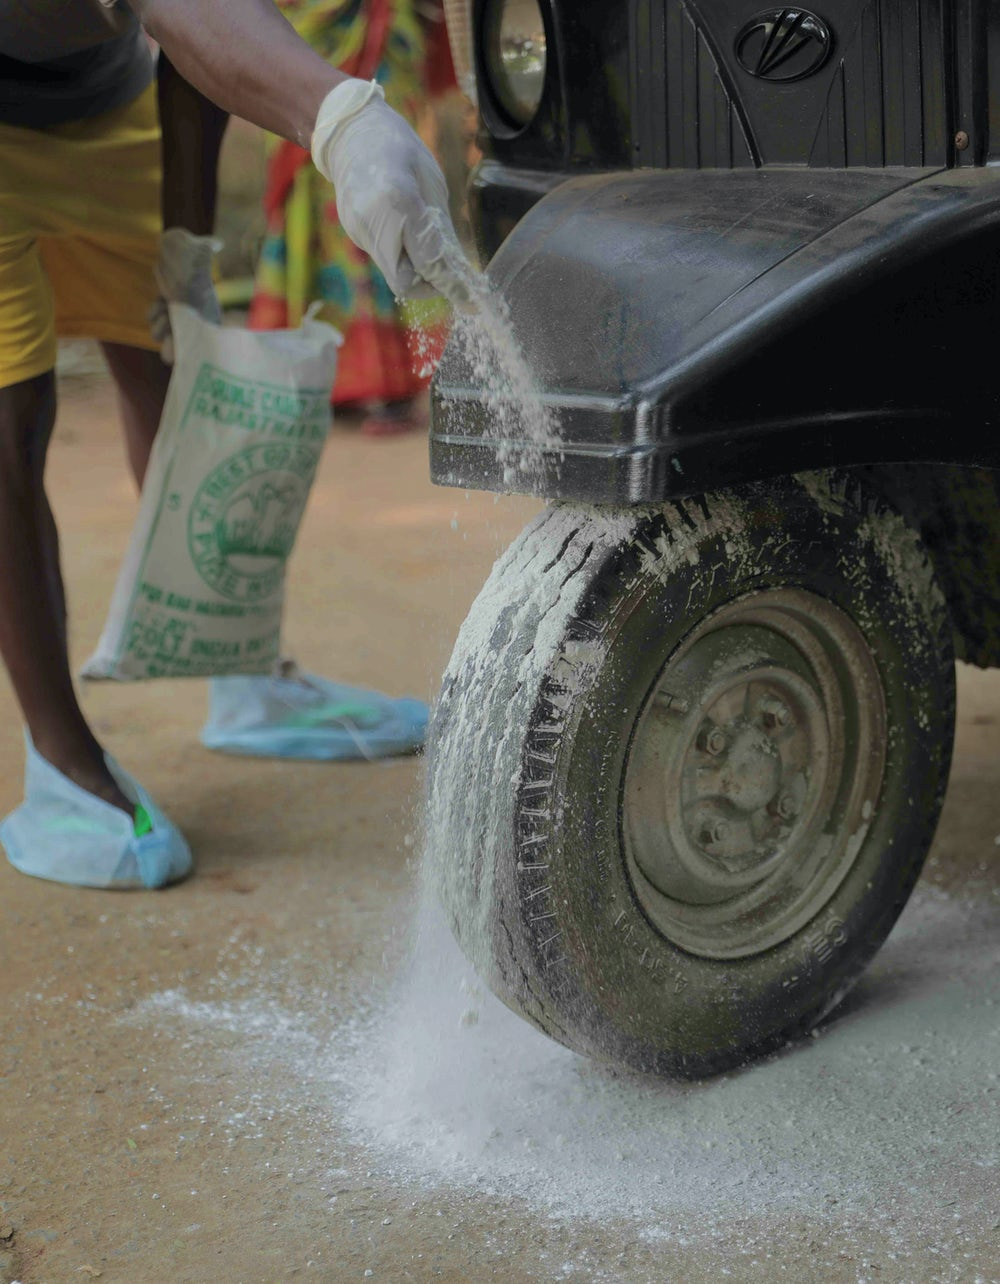 A man dusts a white powder, lime, onto his vehicle's wheels.